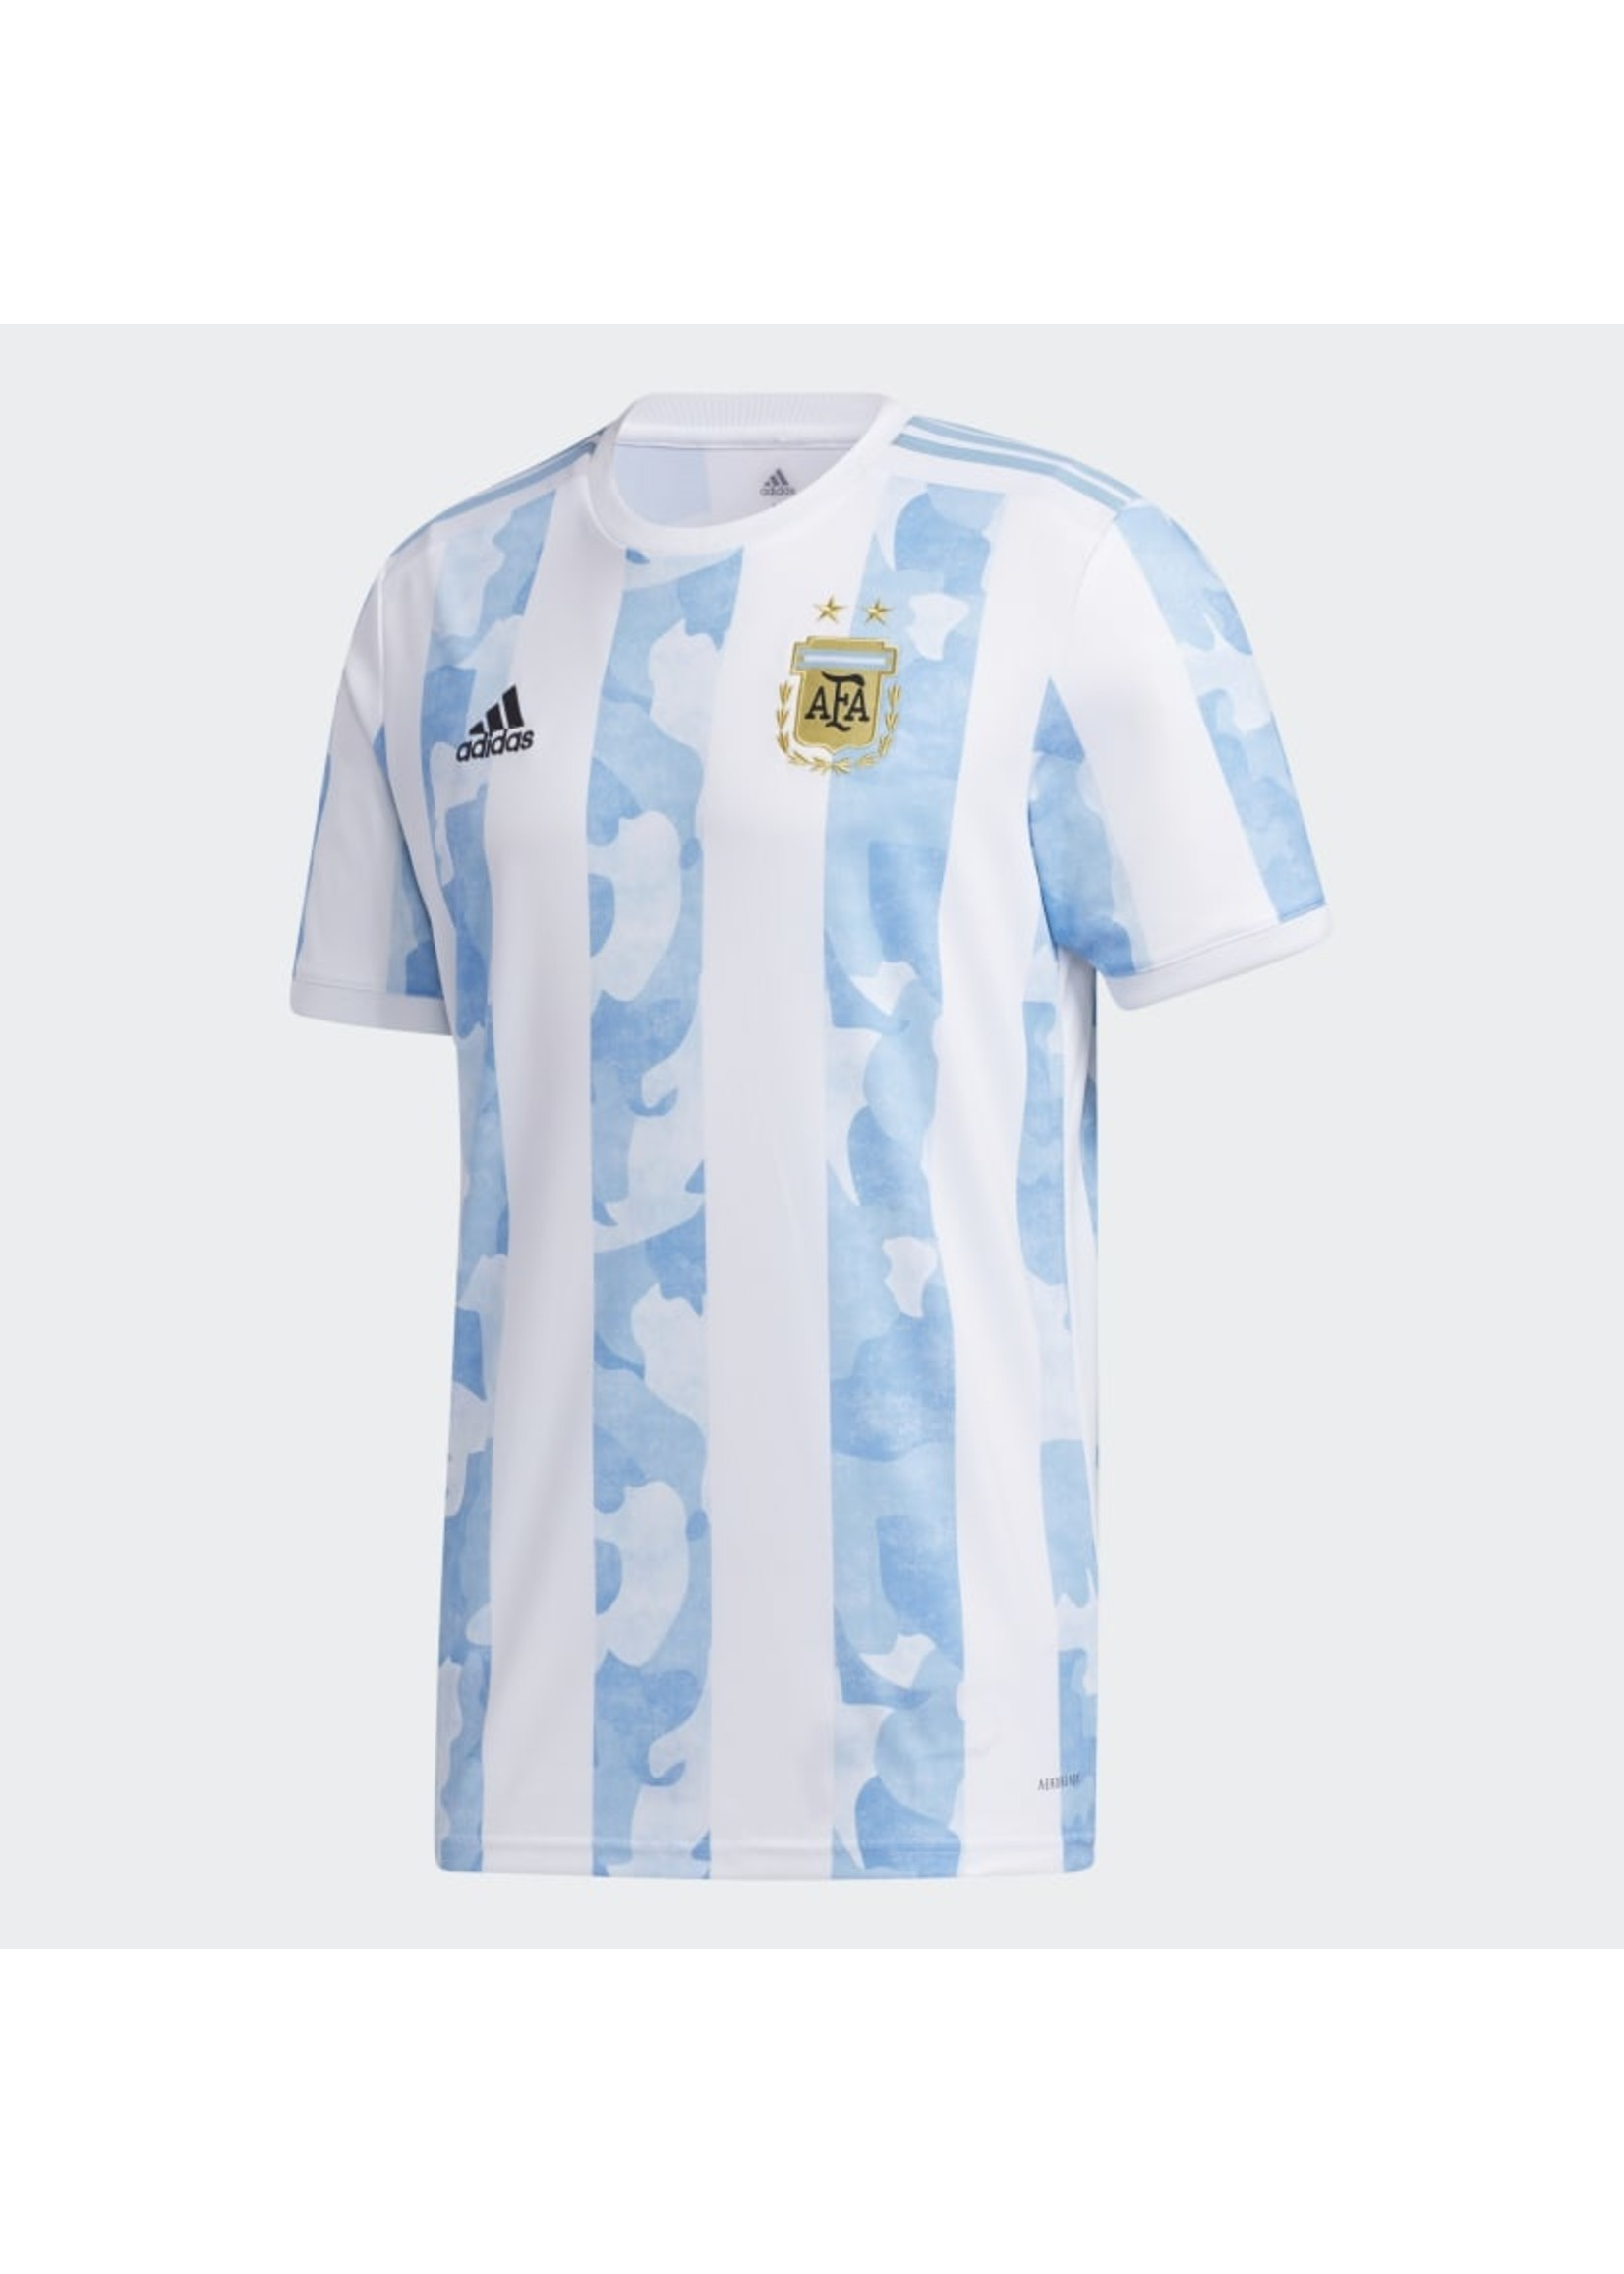 Adidas Argentina 21/22 Home Jersey Adult